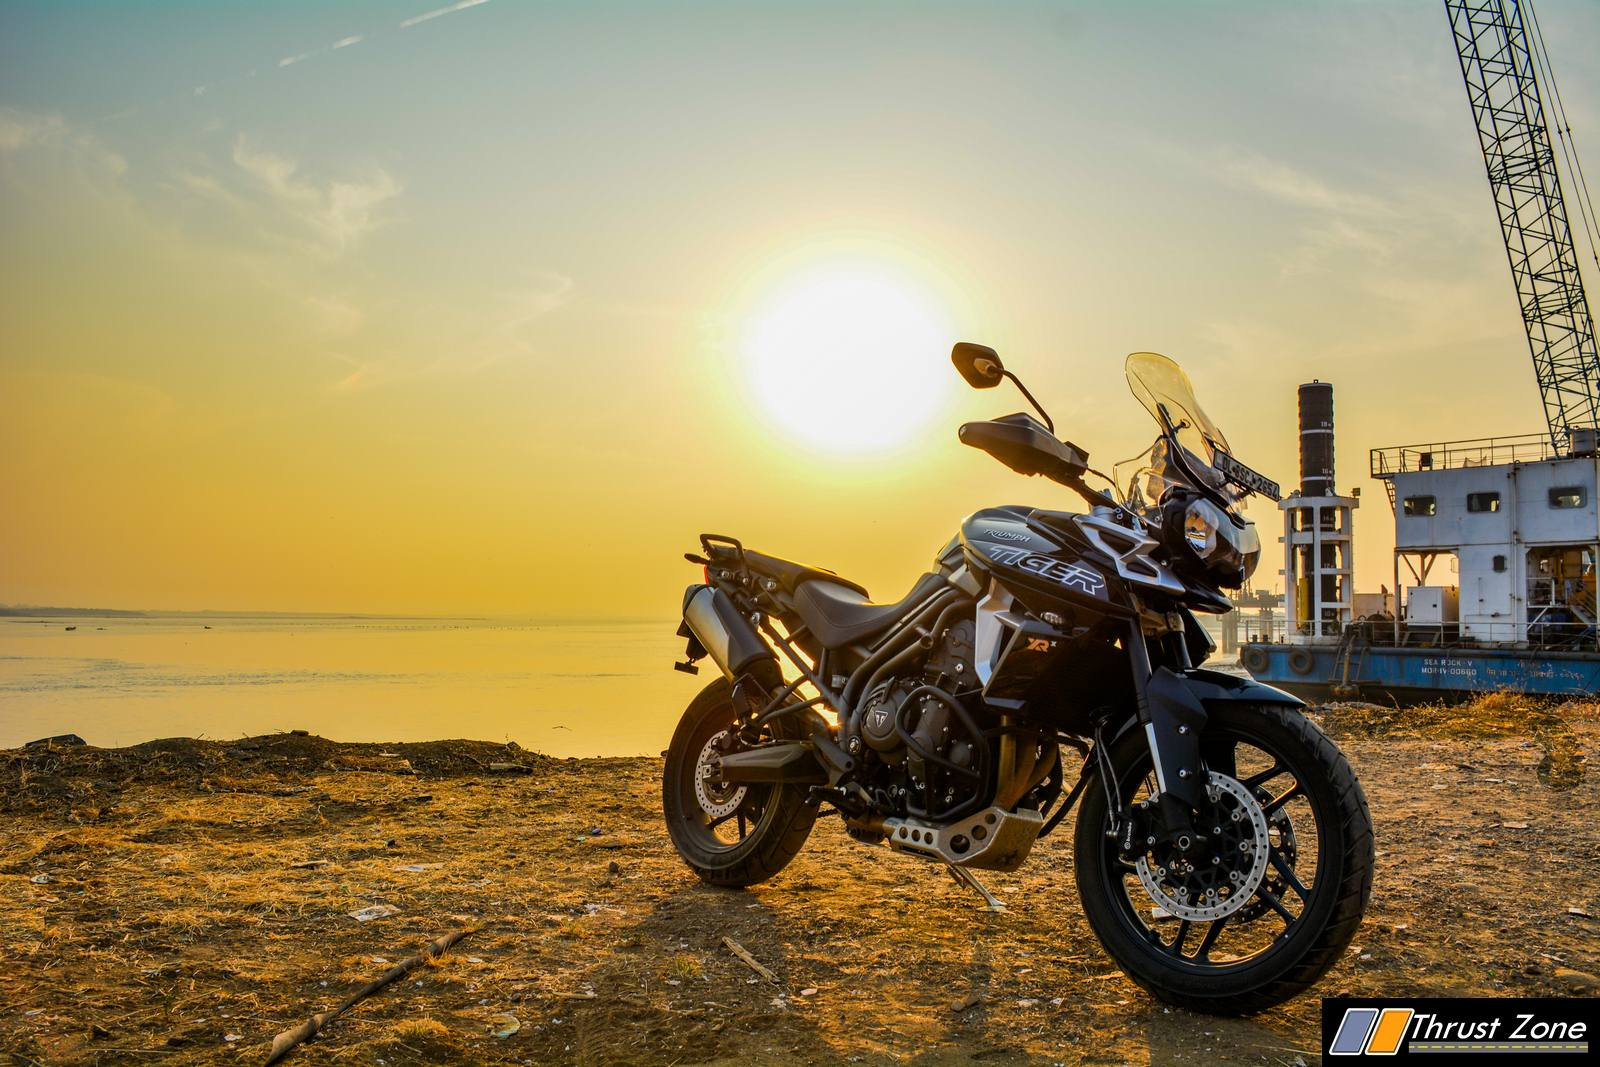 http://www.thrustzone.com/wp-content/uploads/2019/01/2018-Triumph-Tiger-800-india-review-15.jpg